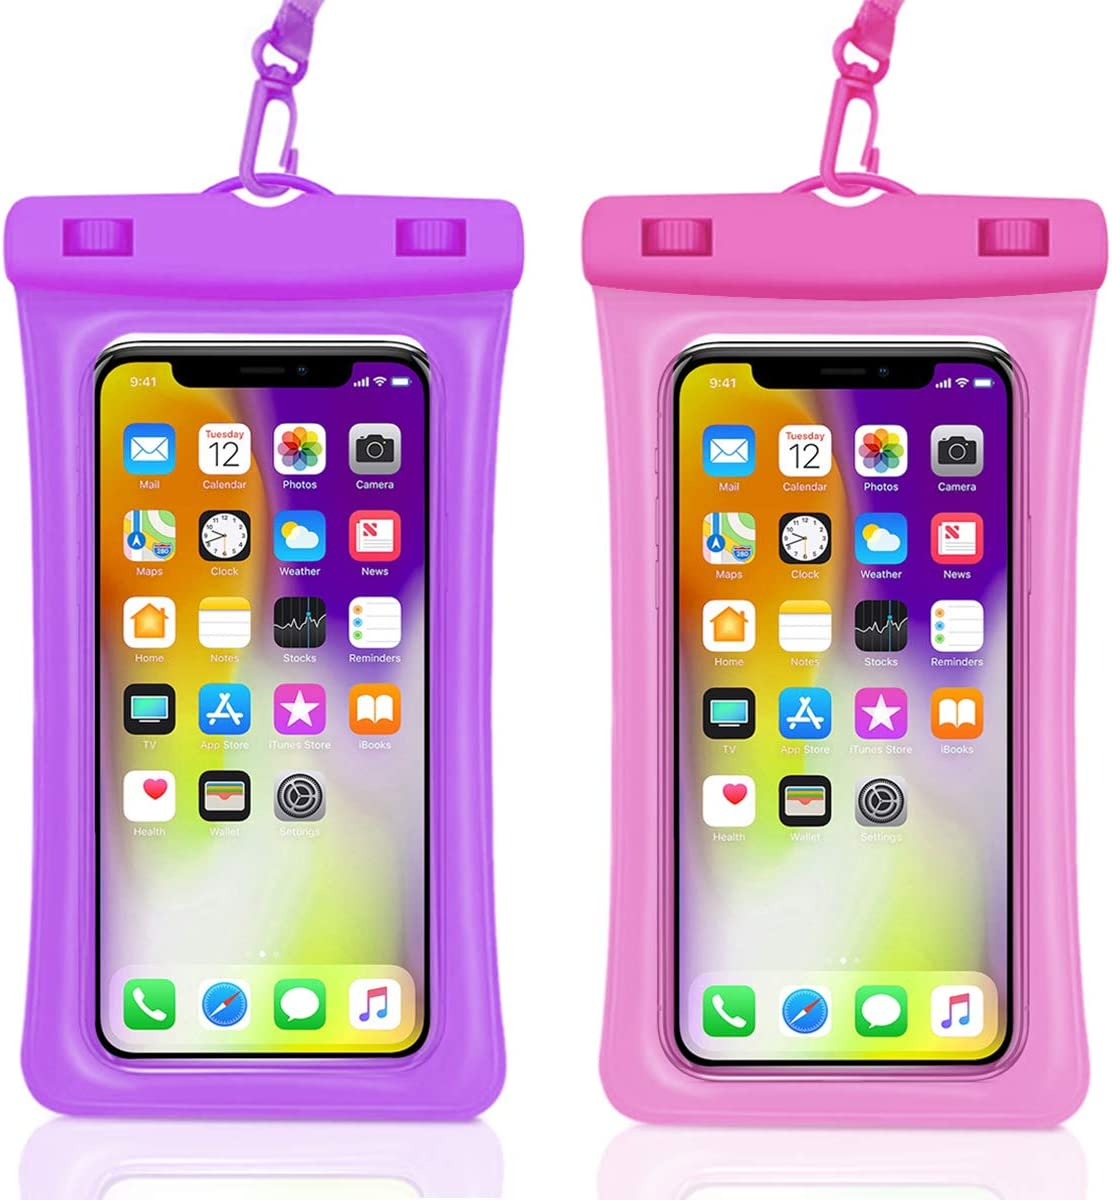 Universal Waterproof Case,Waterproof Phone Pouch for iPhone 11 Pro Max XS Max XR X 8 7 6S Plus Samsung Galaxy s10/s9 Google Pixel 2 HTC Up to 7.0